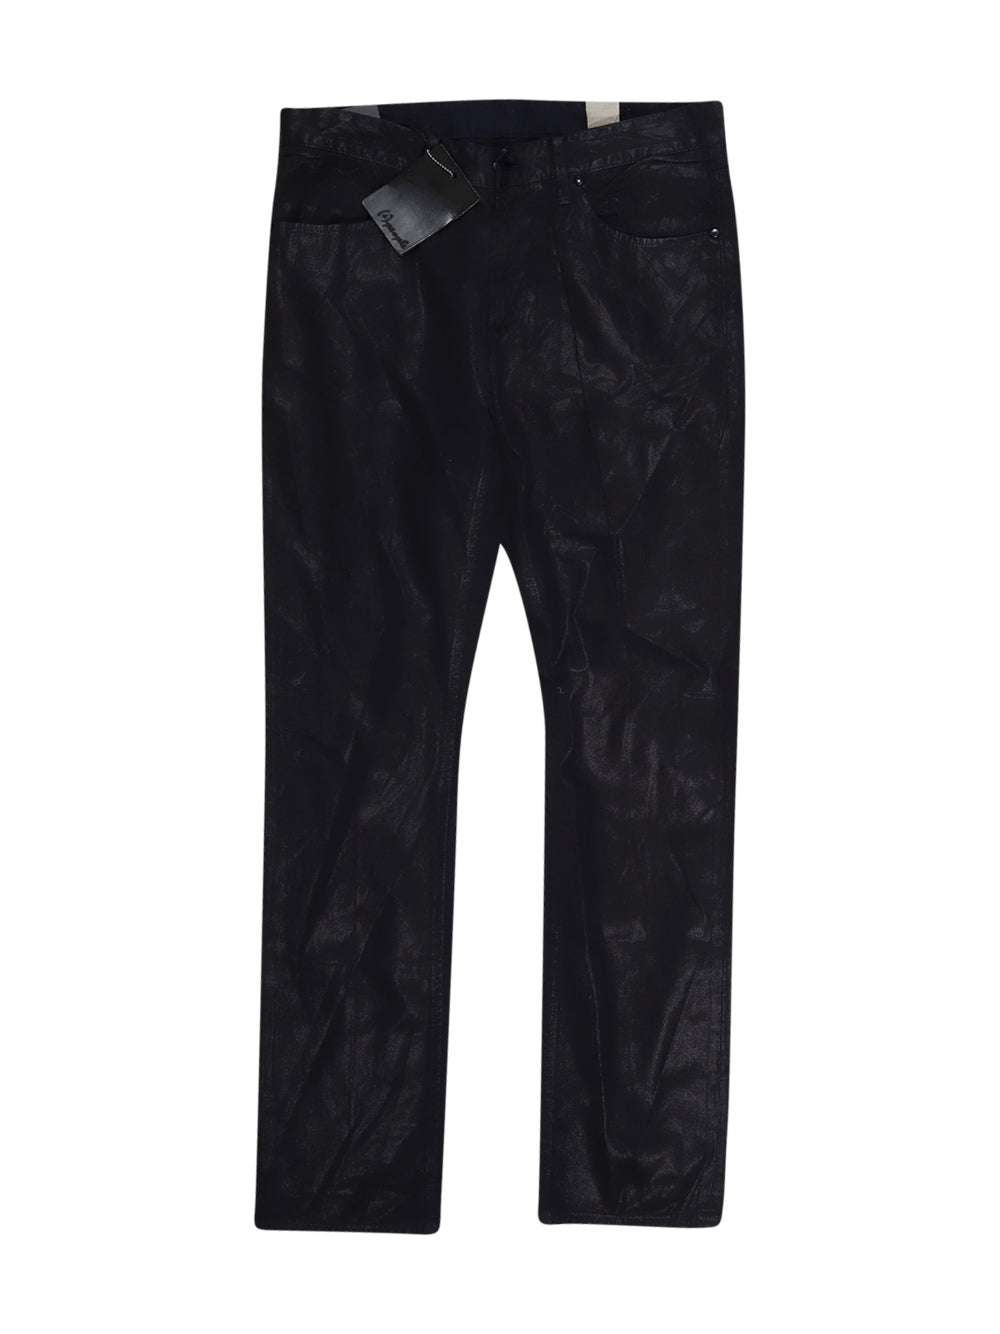 Front photo of Preloved (+) People Black Man's trousers - size 40/L